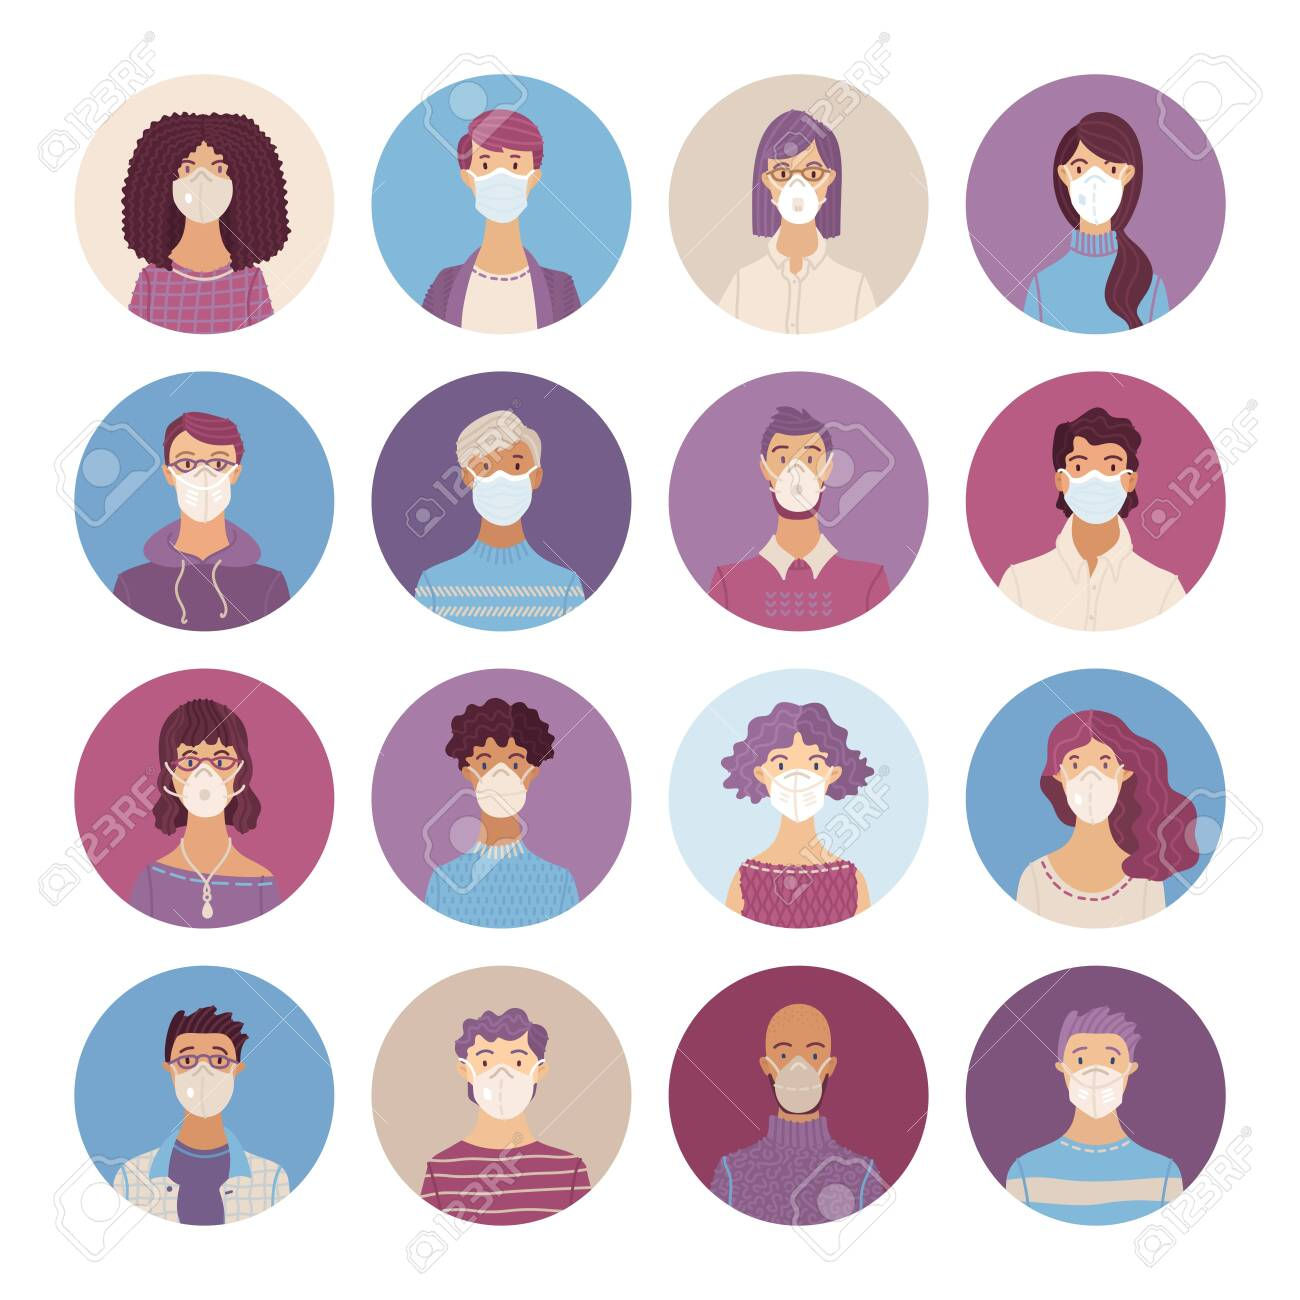 Women and men wearing safety breathing masks icons set. Respirators and medical masks. Disease, flu, coronavirus COVID-19, air pollution, allergies. Vector flat portraits young and aged people. - 146076050